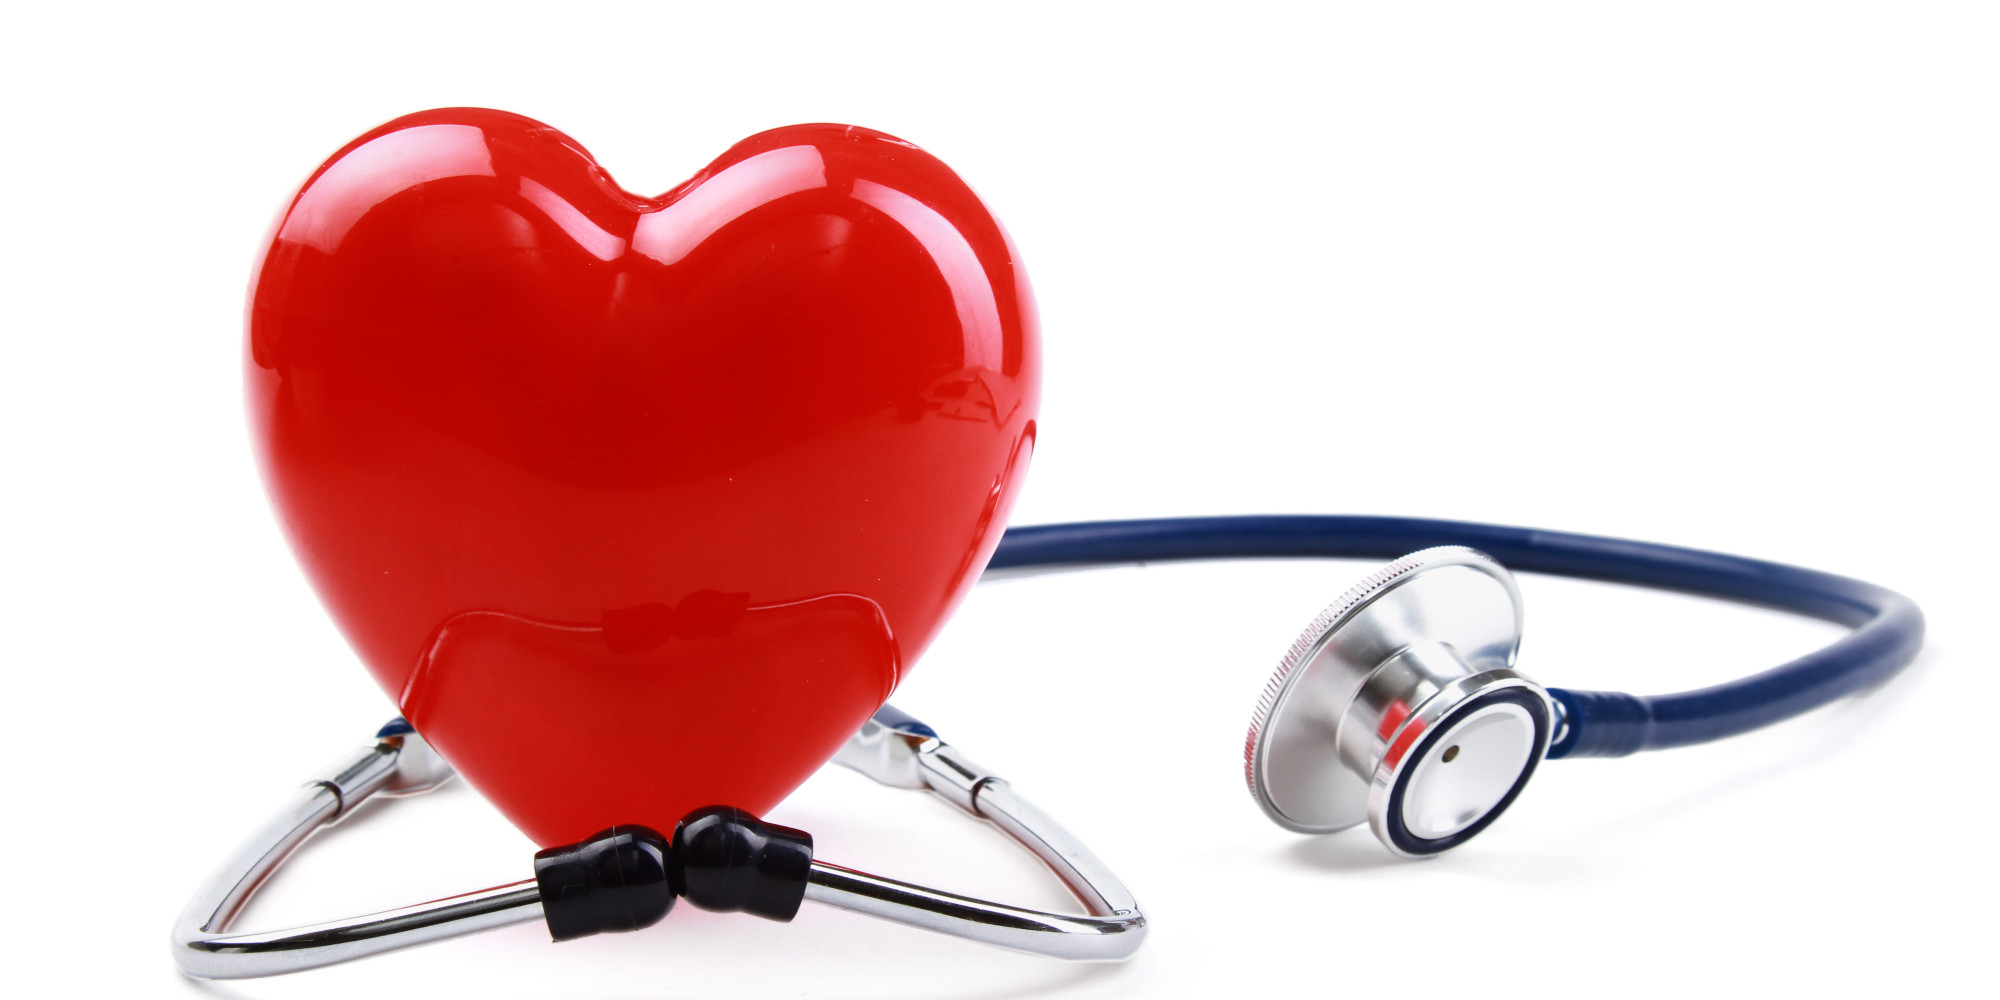 get-regular-ehalth-checkups-heart-diseases-check-ups.jpg